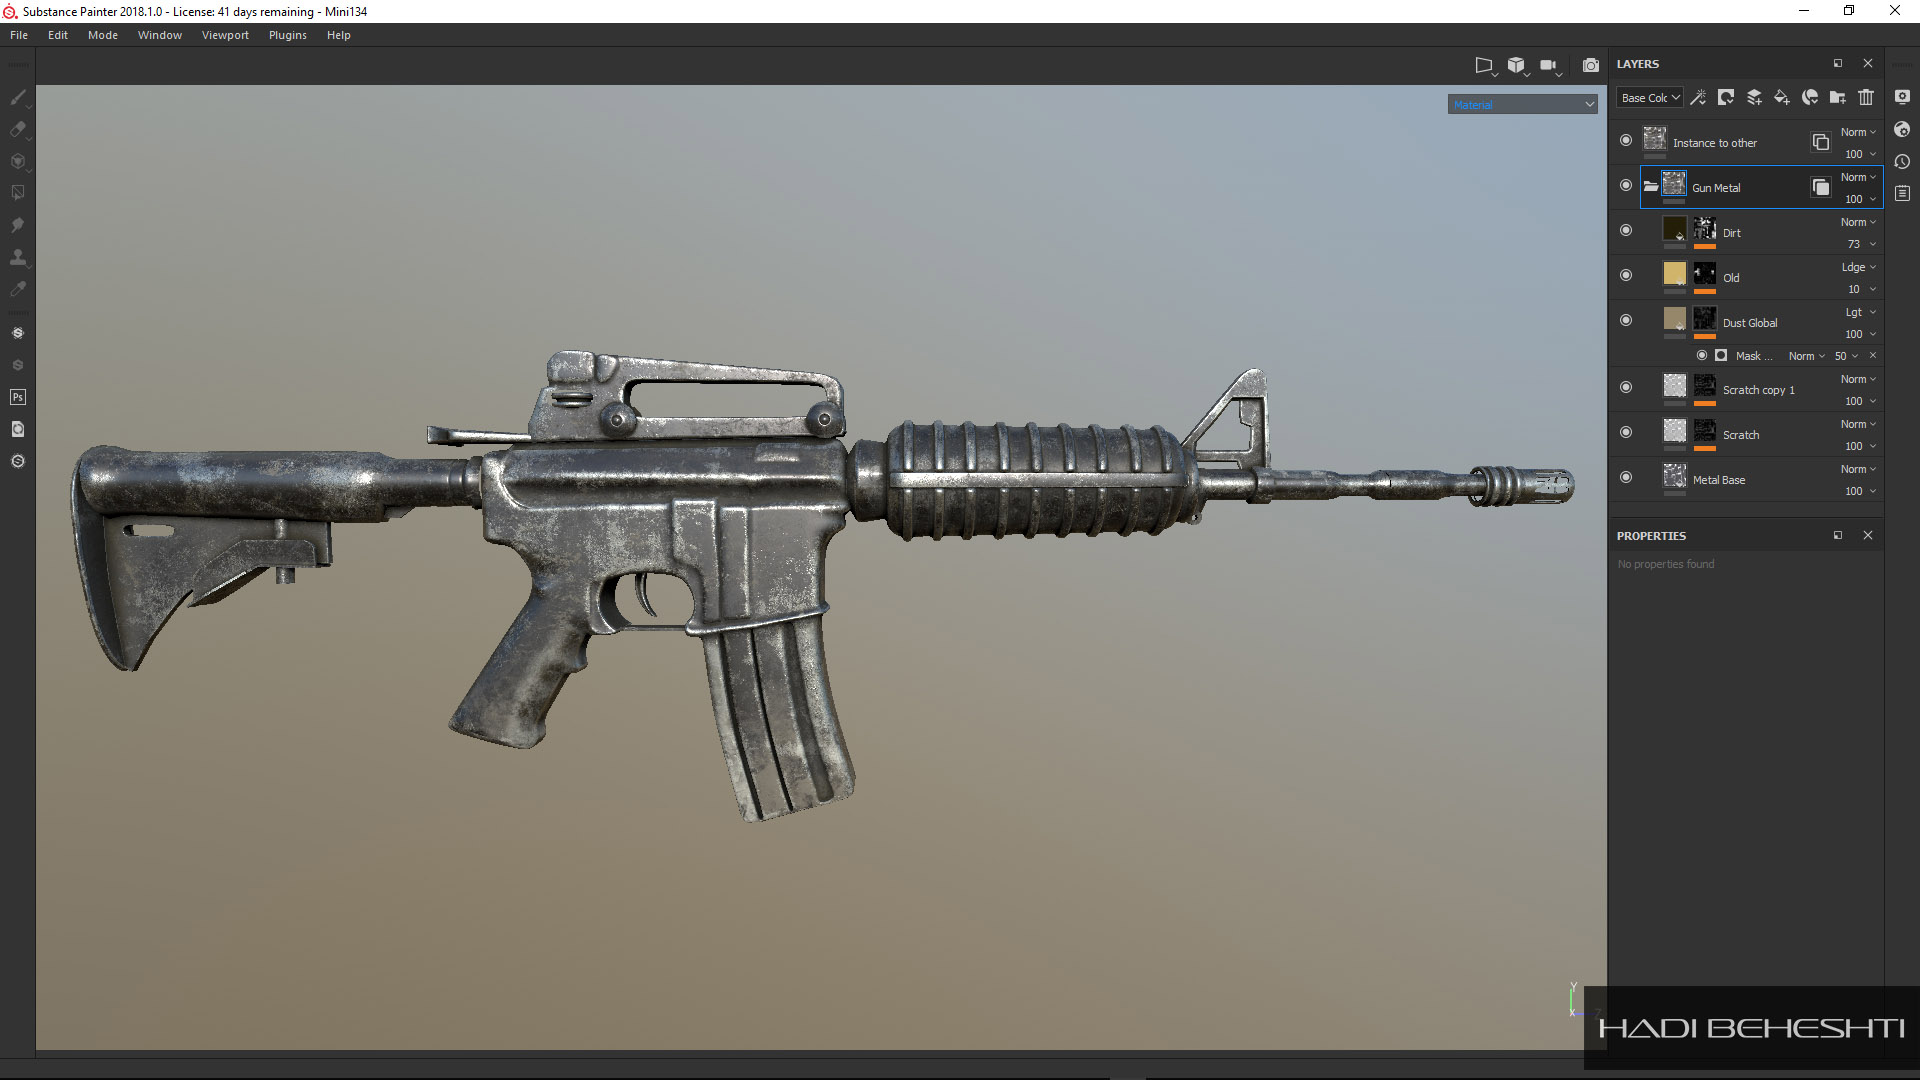 M4A1 Carbine_Modeling and Texturing by Hadi Beheshti-CG Artist-3